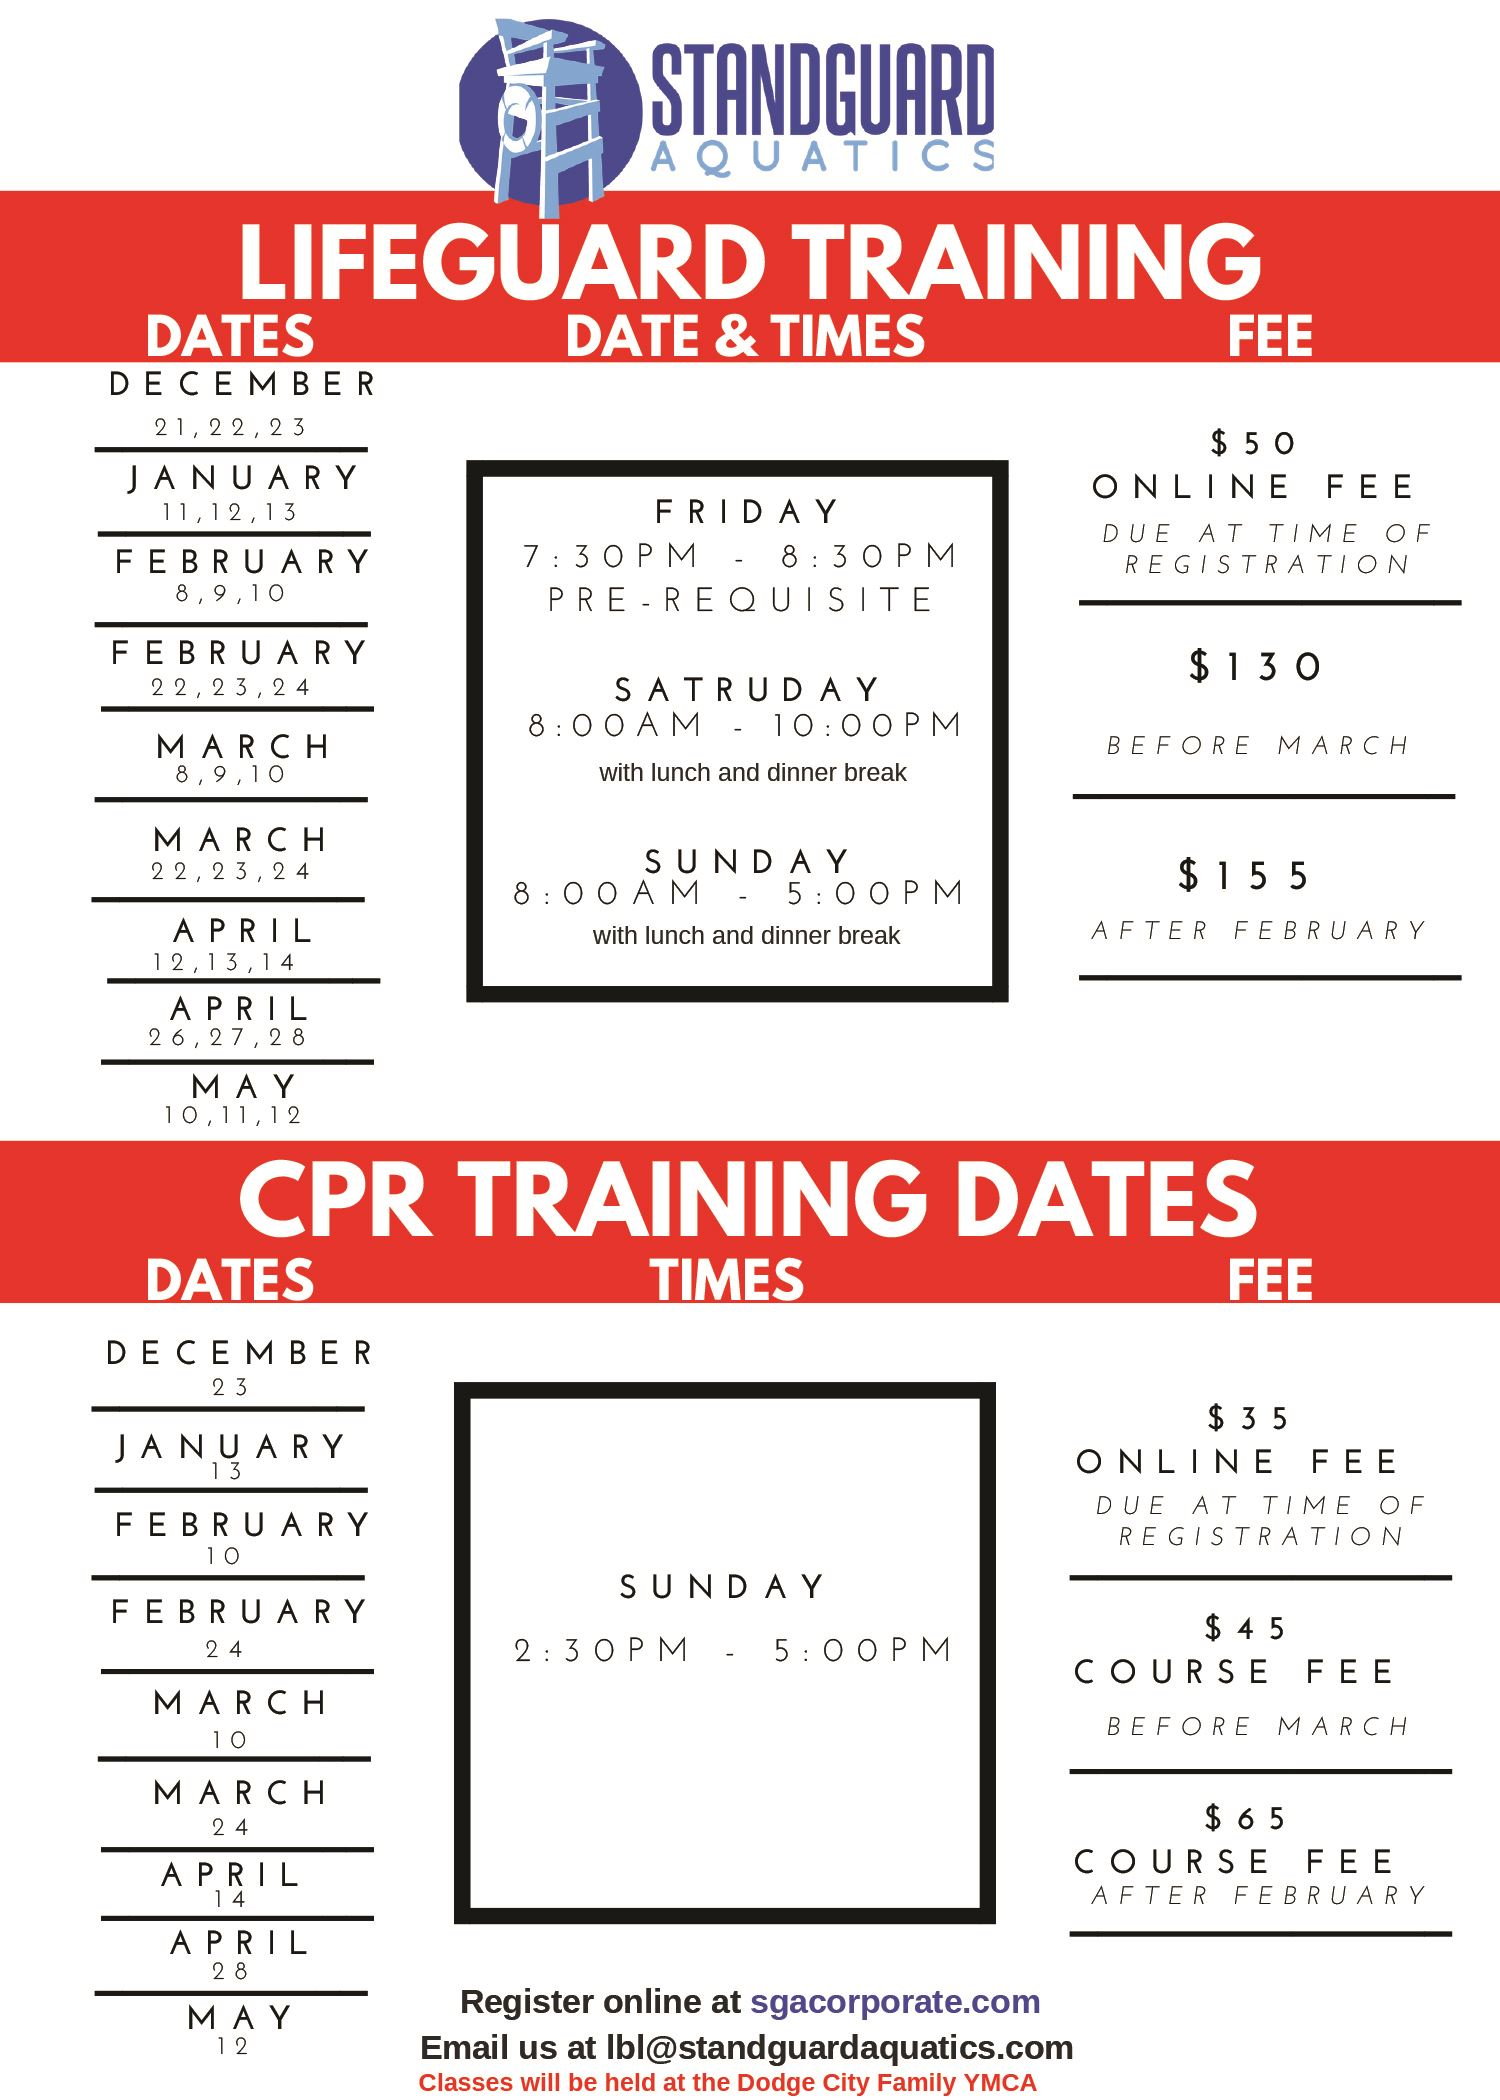 2018-2019 lifeguard training schedule